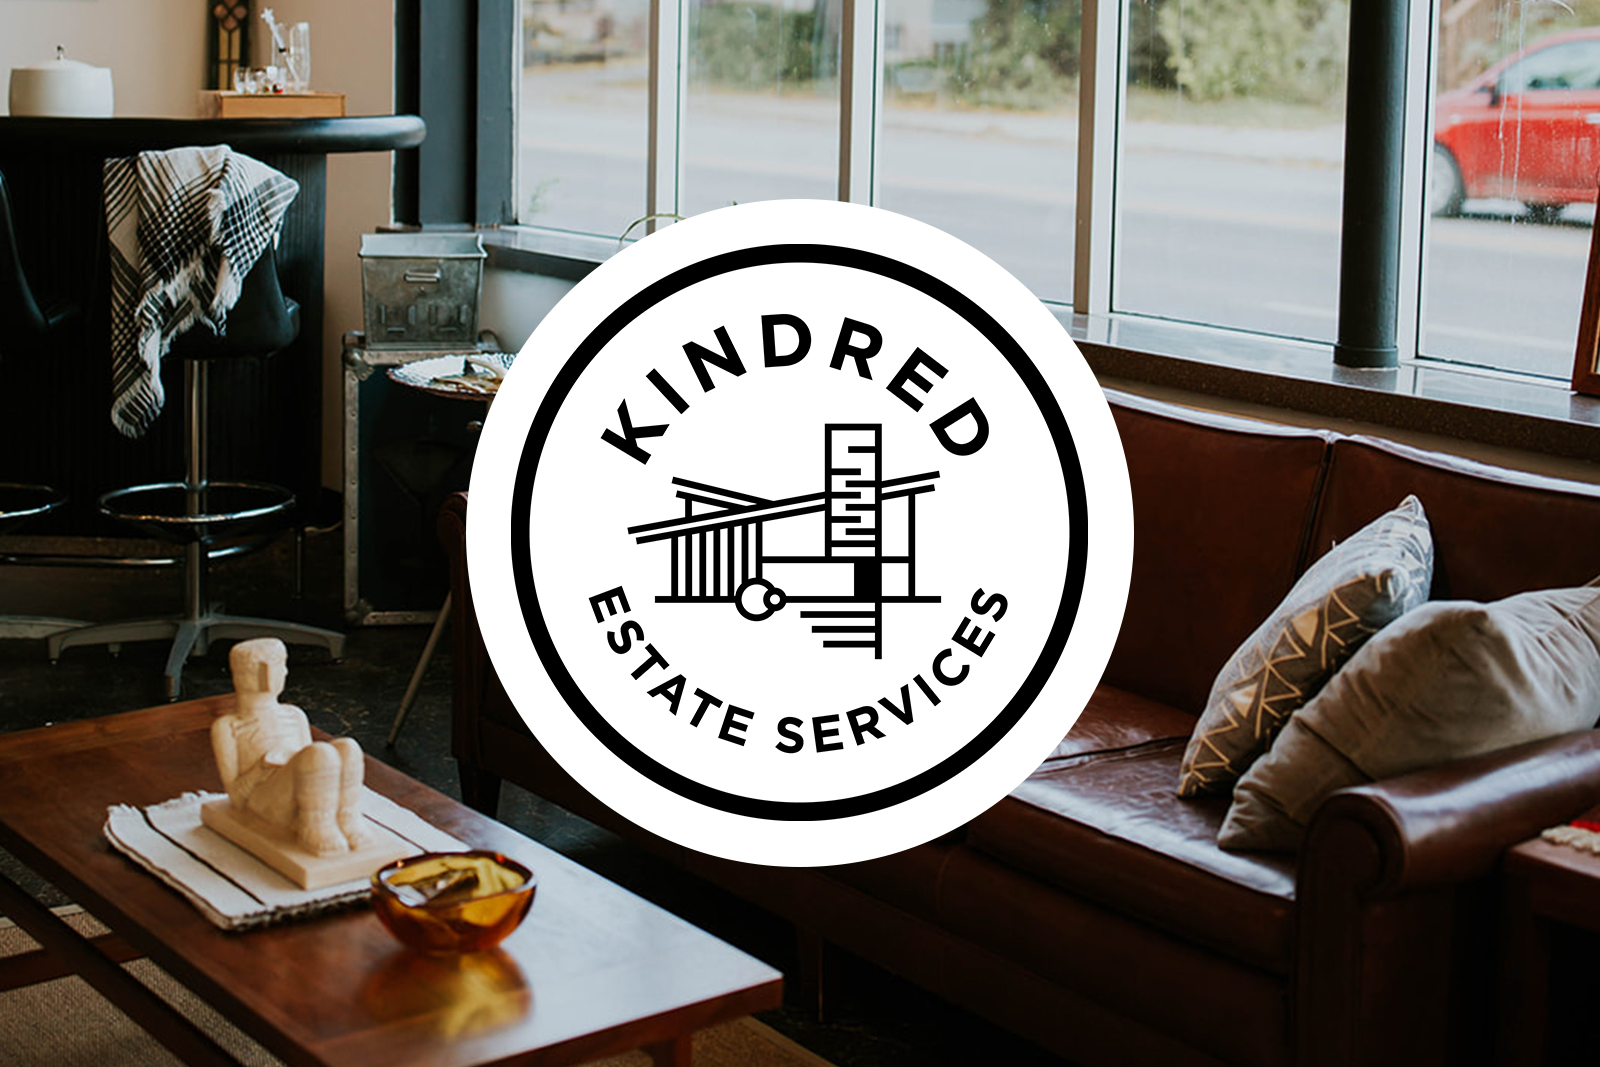 Kindred estate services - Kindred Estate Services is our parent company that provides all of your estate needs, including estate liquidation, cleanup and haul away, and purchasing items for Urban Up. We can also match you with reputable realtors and service providers to meet your needs outside of our scope of work.